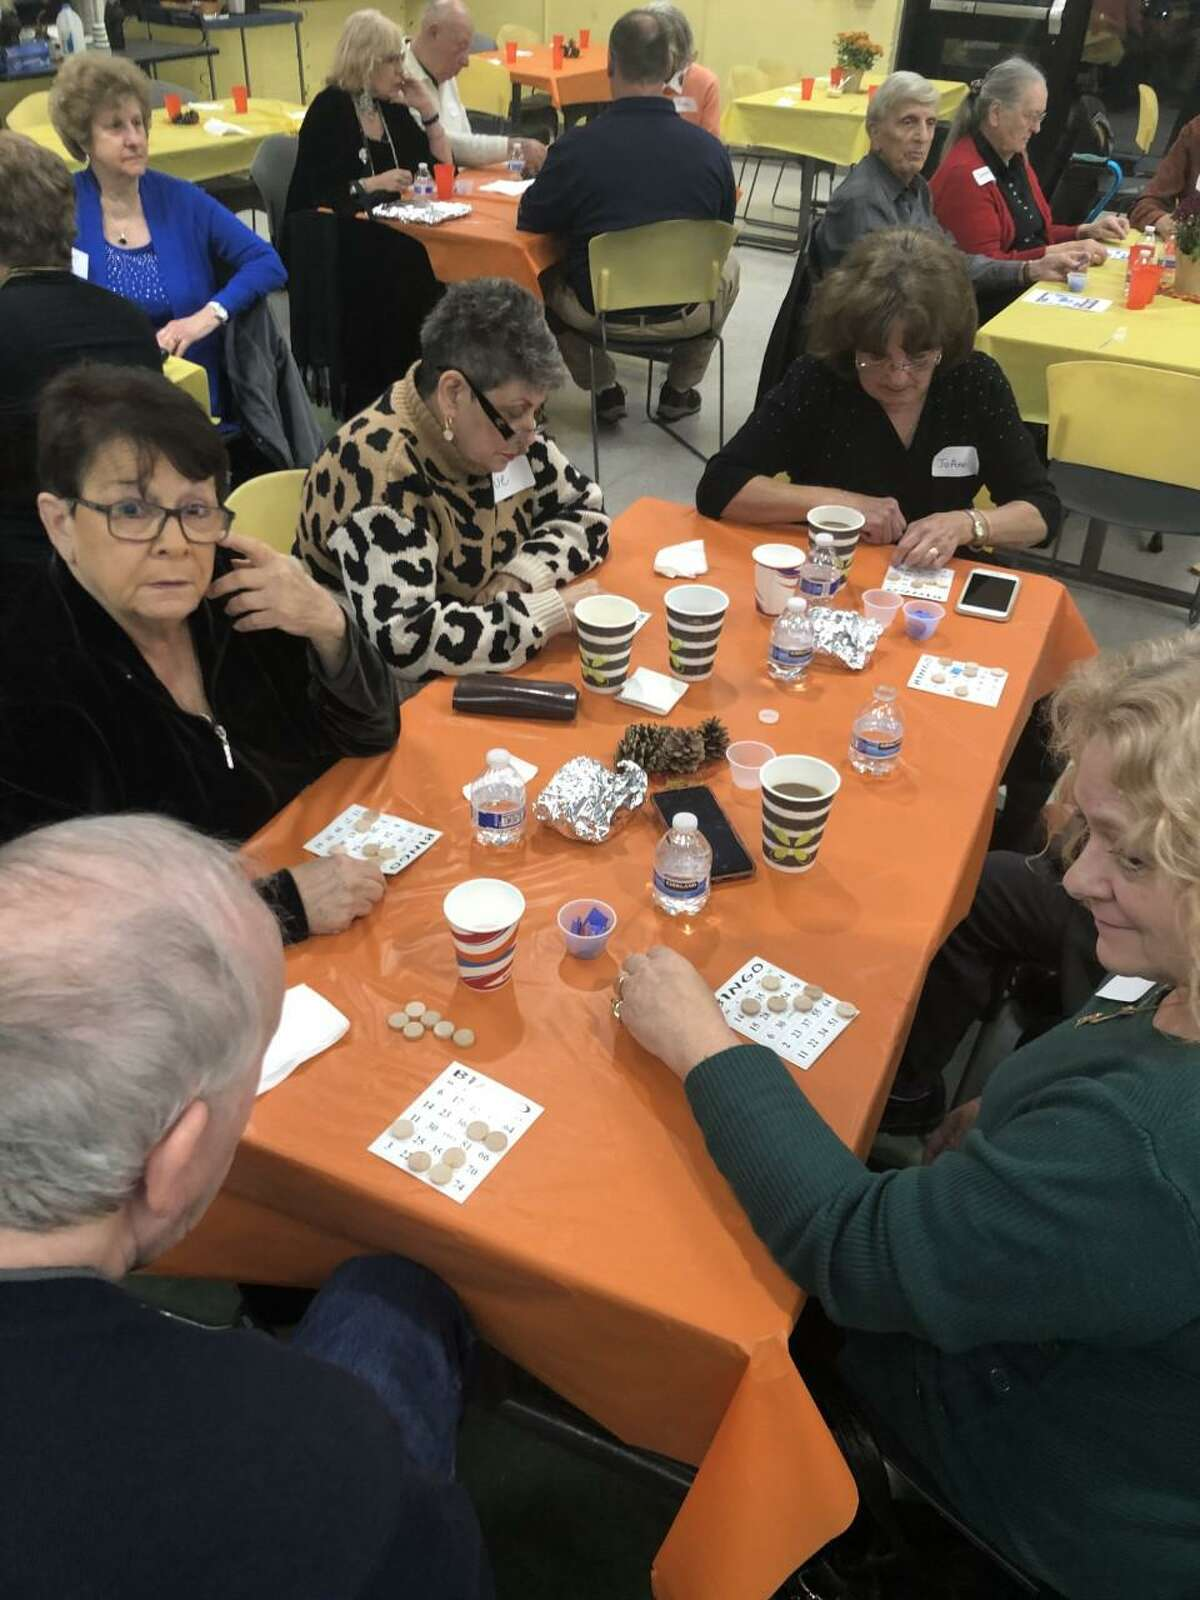 Lewis Mills High School's National Foreign Language Honor Society recently held the annual Senior Citizen Prom, attended by approximately 40 senior citizens.